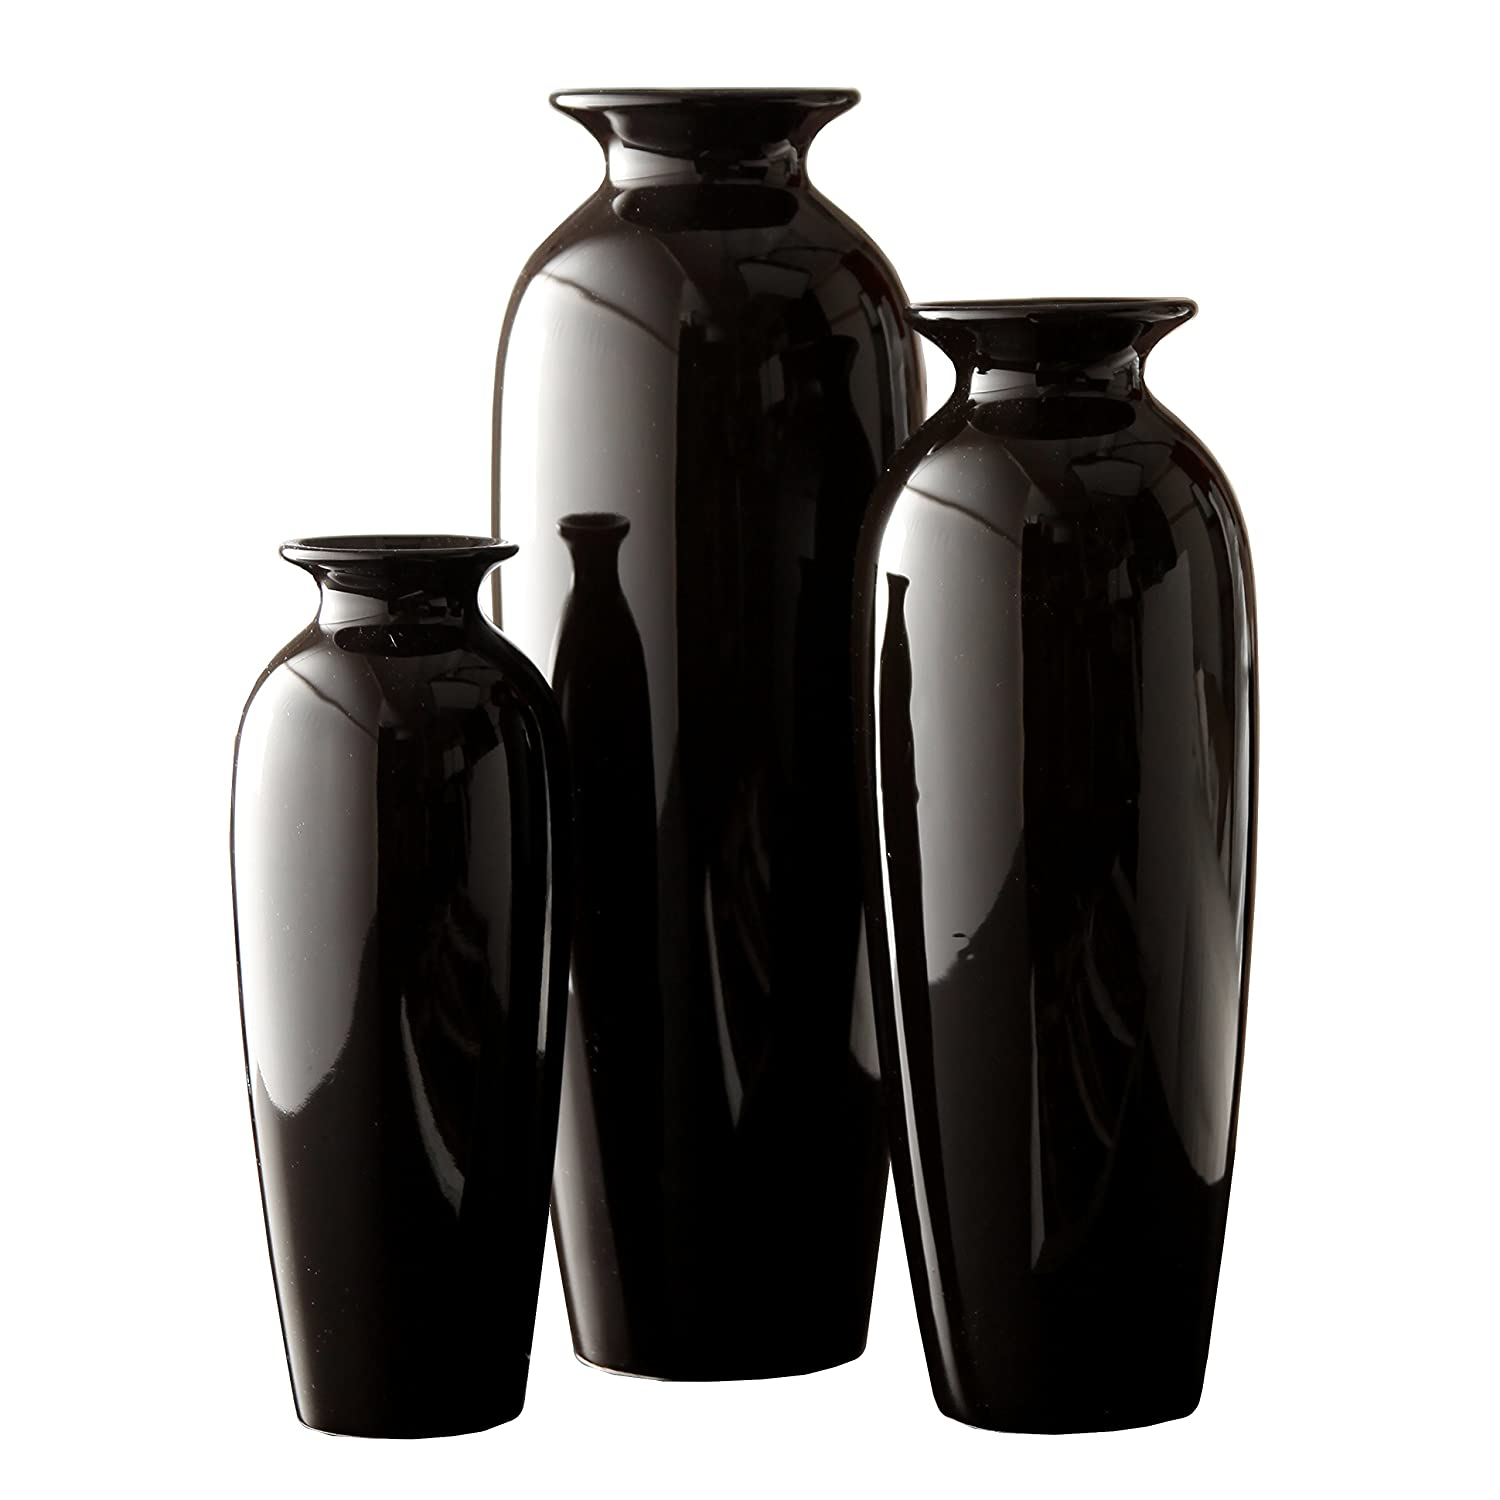 Vases amazon home decor hosley set of 3 black ceramic vases reviewsmspy